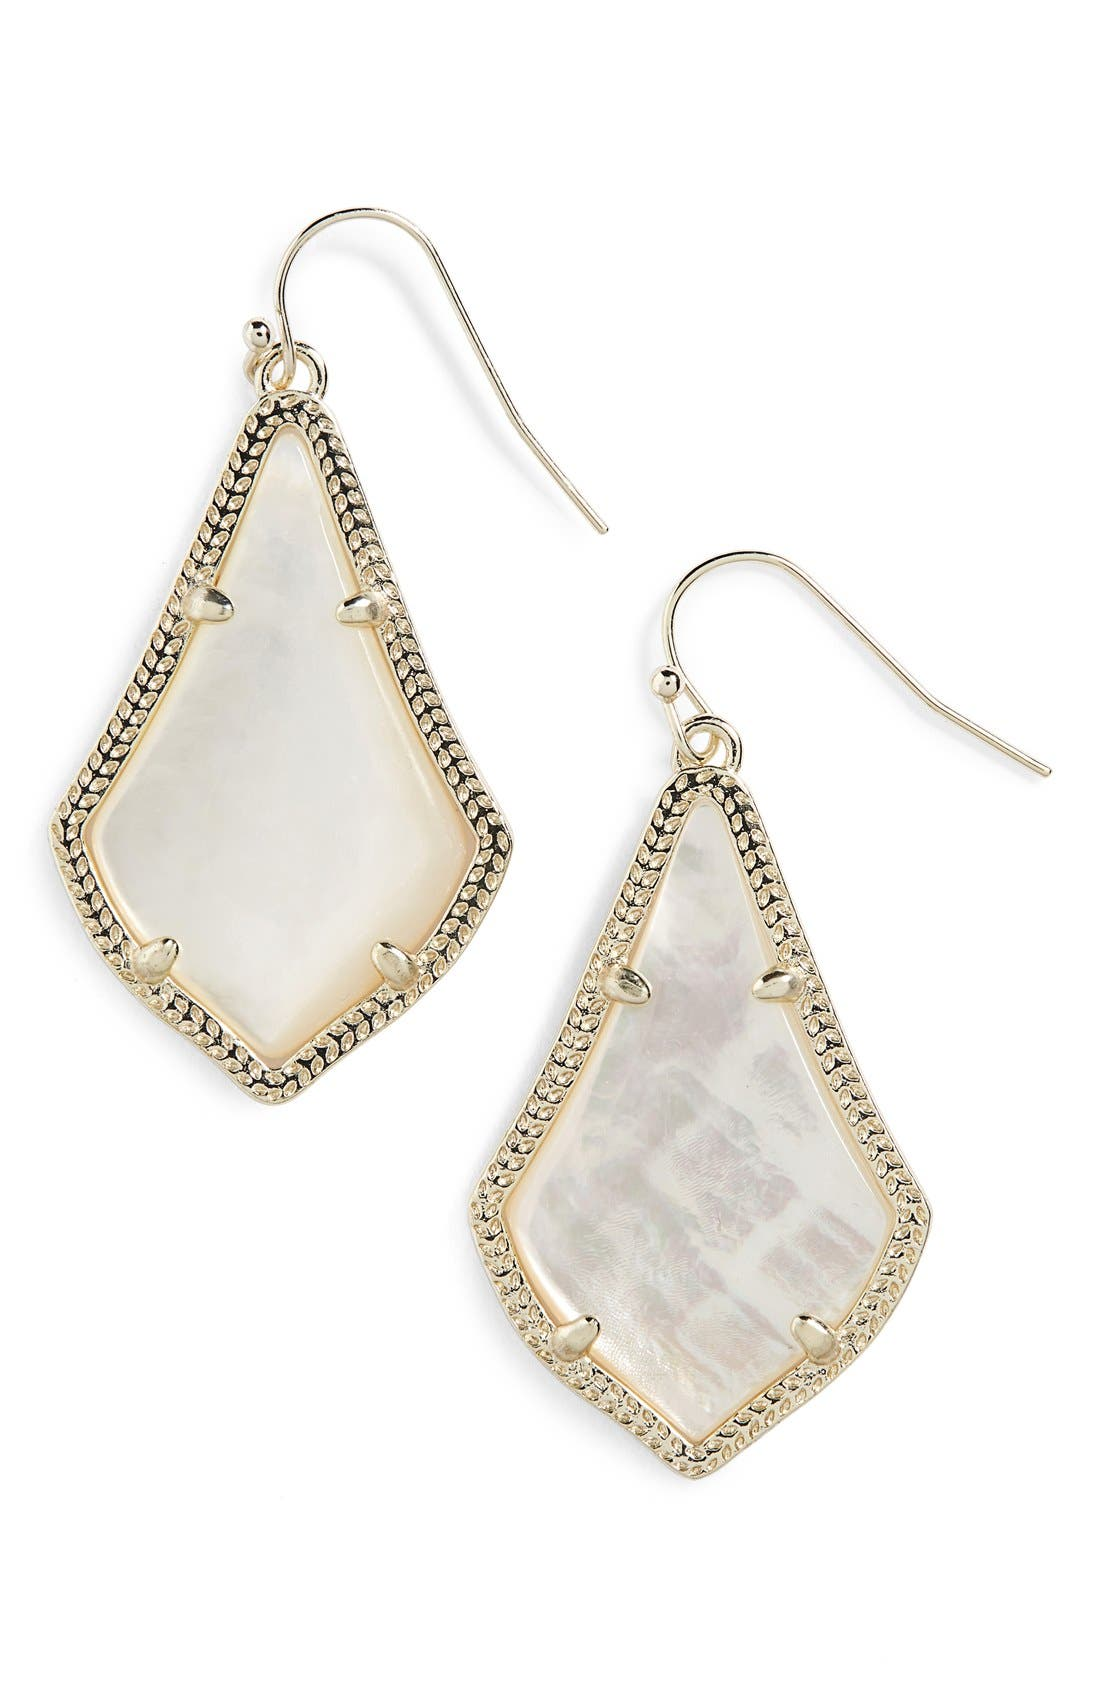 Kendra Scott 'Alex' Teardrop Earrings